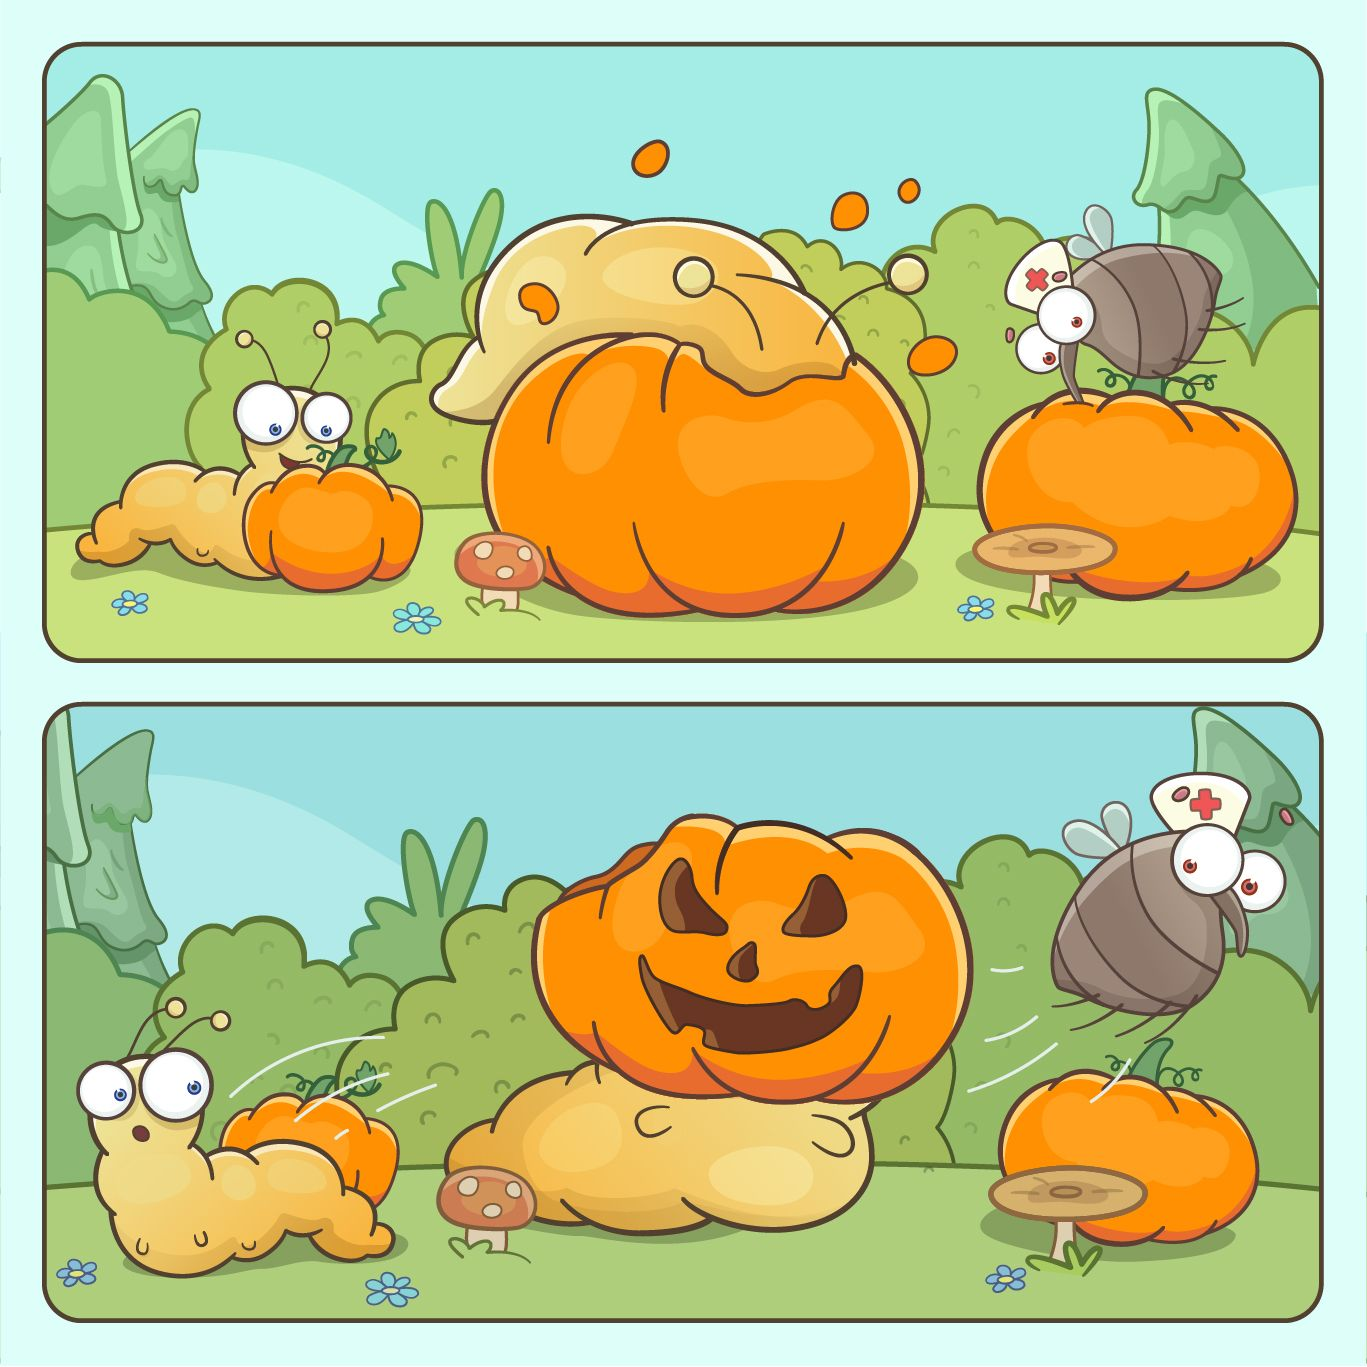 Unusual way to carve out a pumpkin. #halloween #halloween2019 #halloweeninspiration #halloweenideas #jackolantern #pumpkinseason #pumpkincarving #halloweencomic #funnycomic #cutecomic #pumpkinface #spookylicious #pumpkindrawing #pumpkinillustration #pumpkinideas #cuteart #funnyart #carvingpumpkin #pumpkinmeal